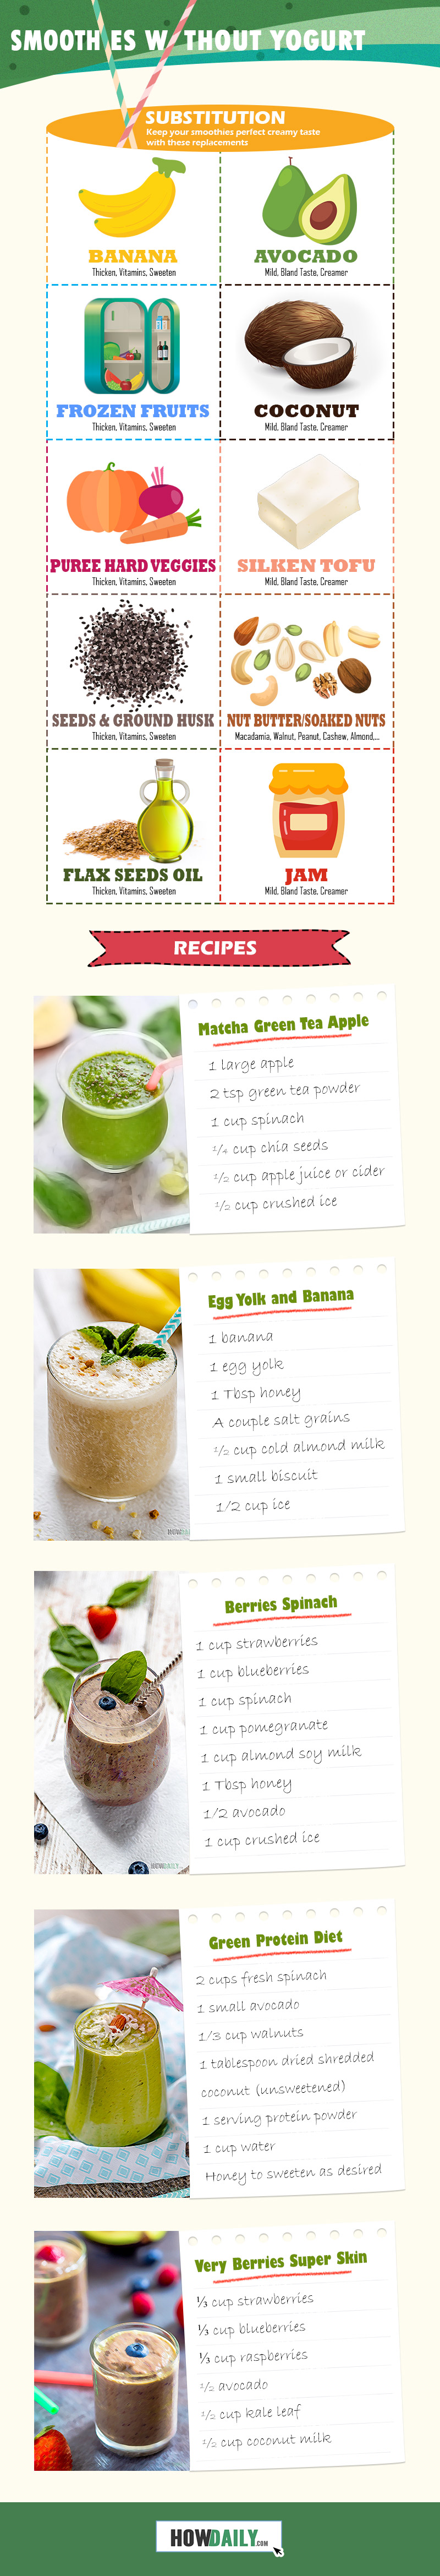 Infographic on making Smoothies Without Yogurt